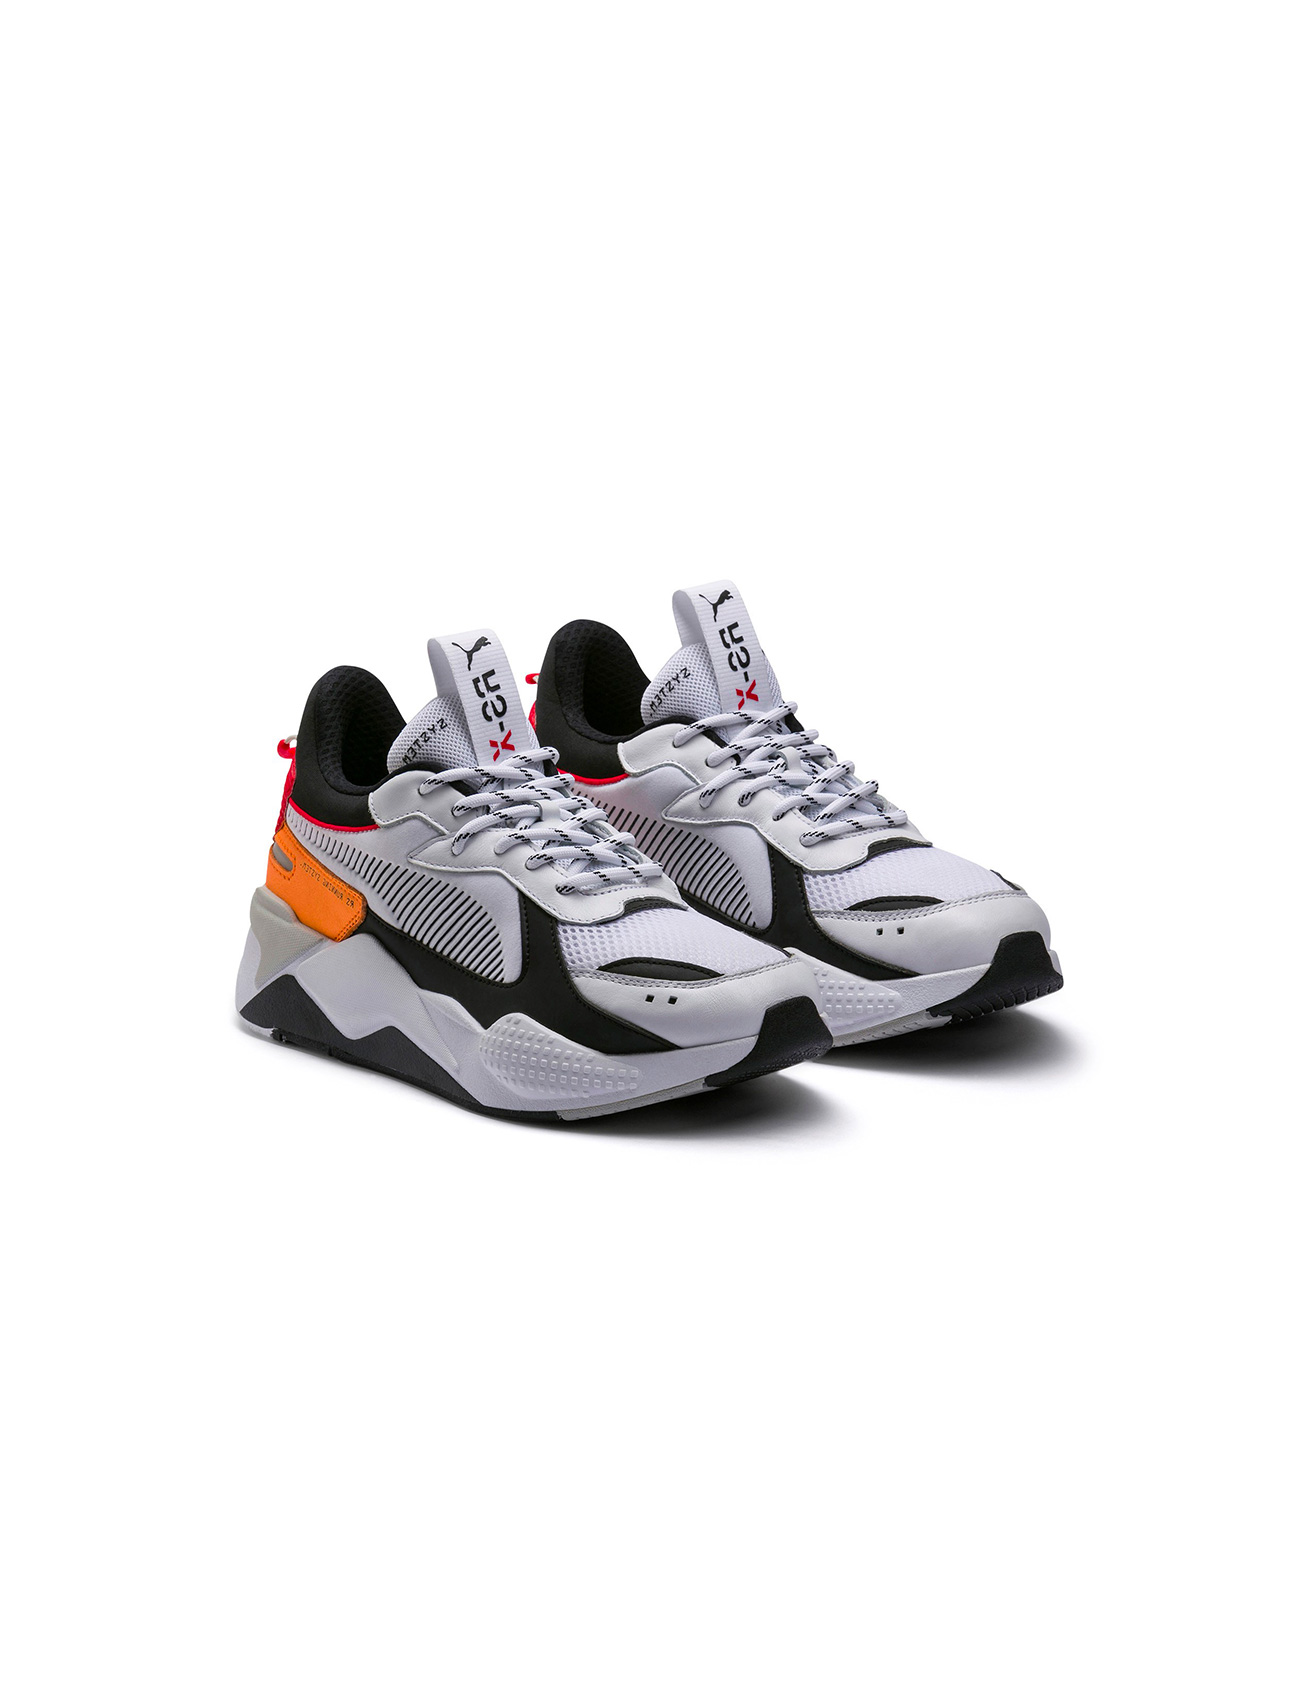 Puma Rs-X Tracks White-Black | Wooden Store